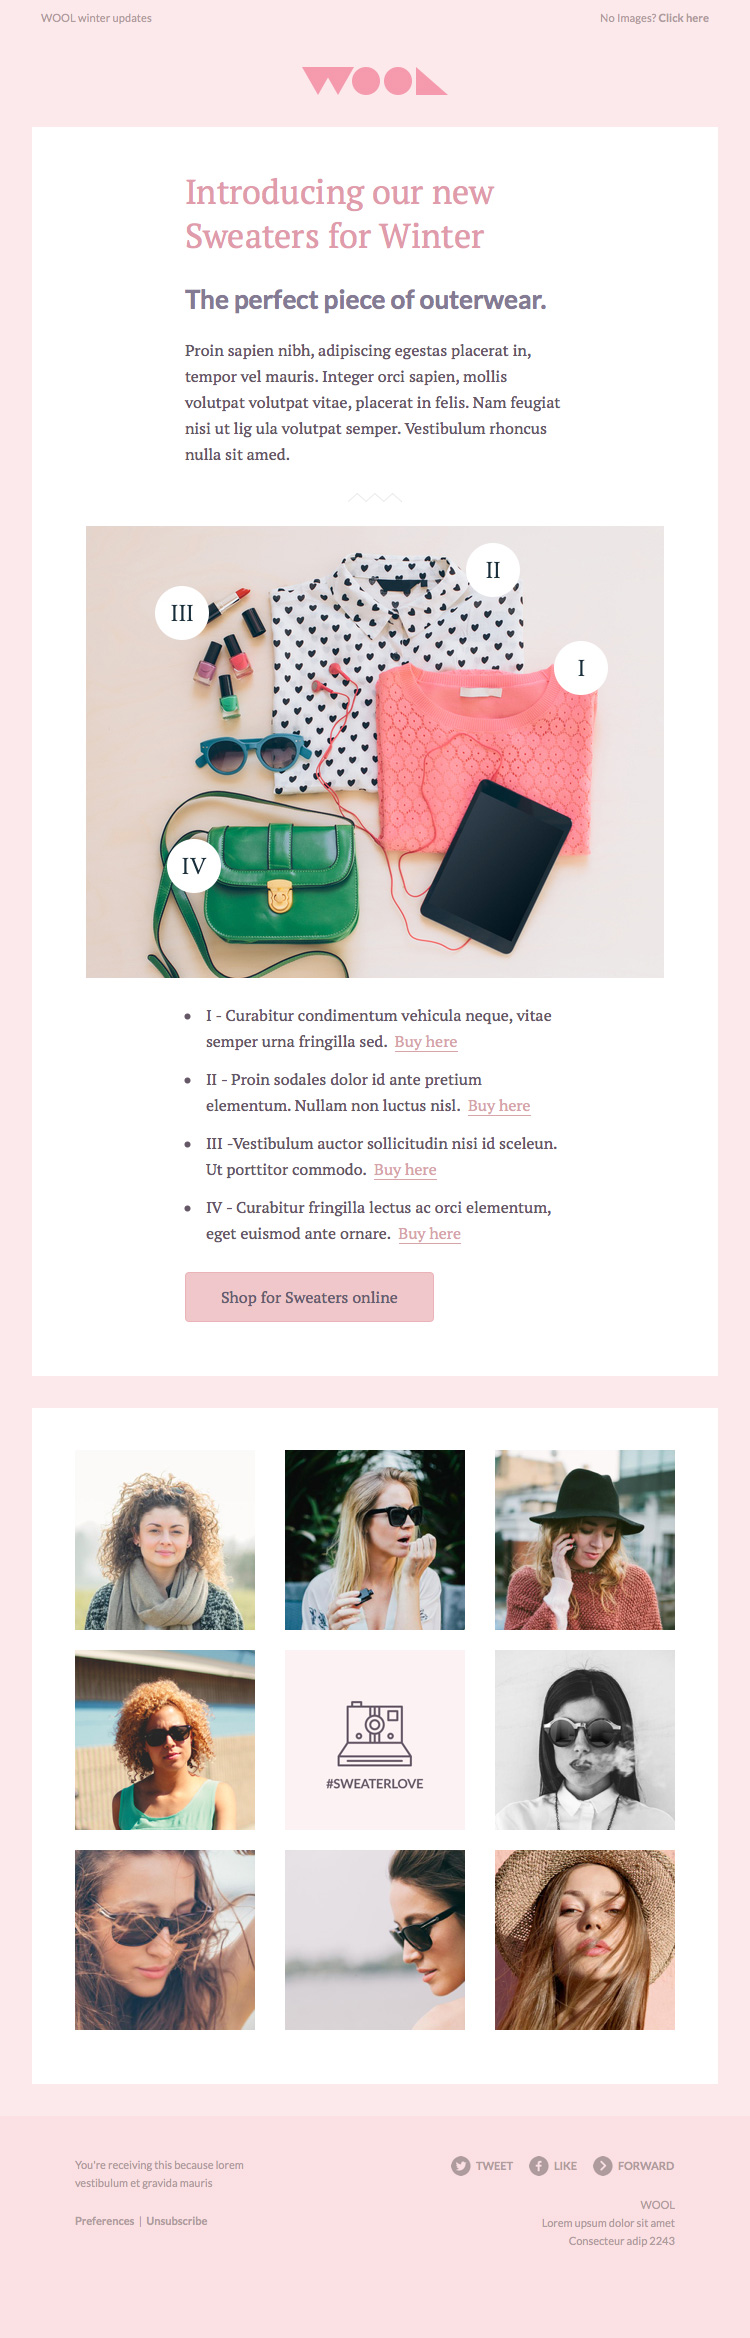 HTML email templates for free | Campaign Monitor | Bonbon | Web ...